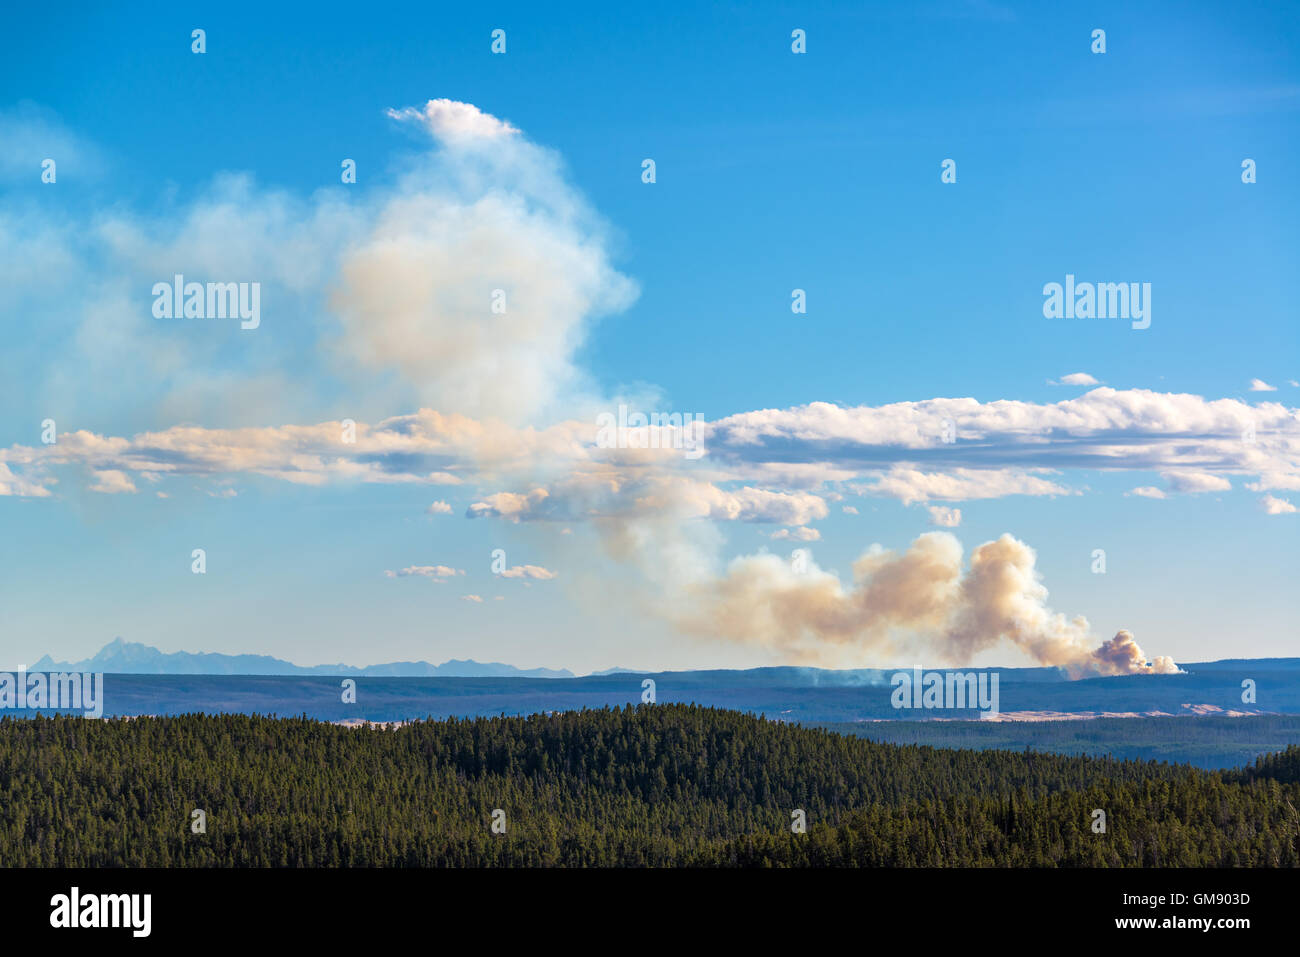 View of a wildfire burning in Yellowstone National Park - Stock Image